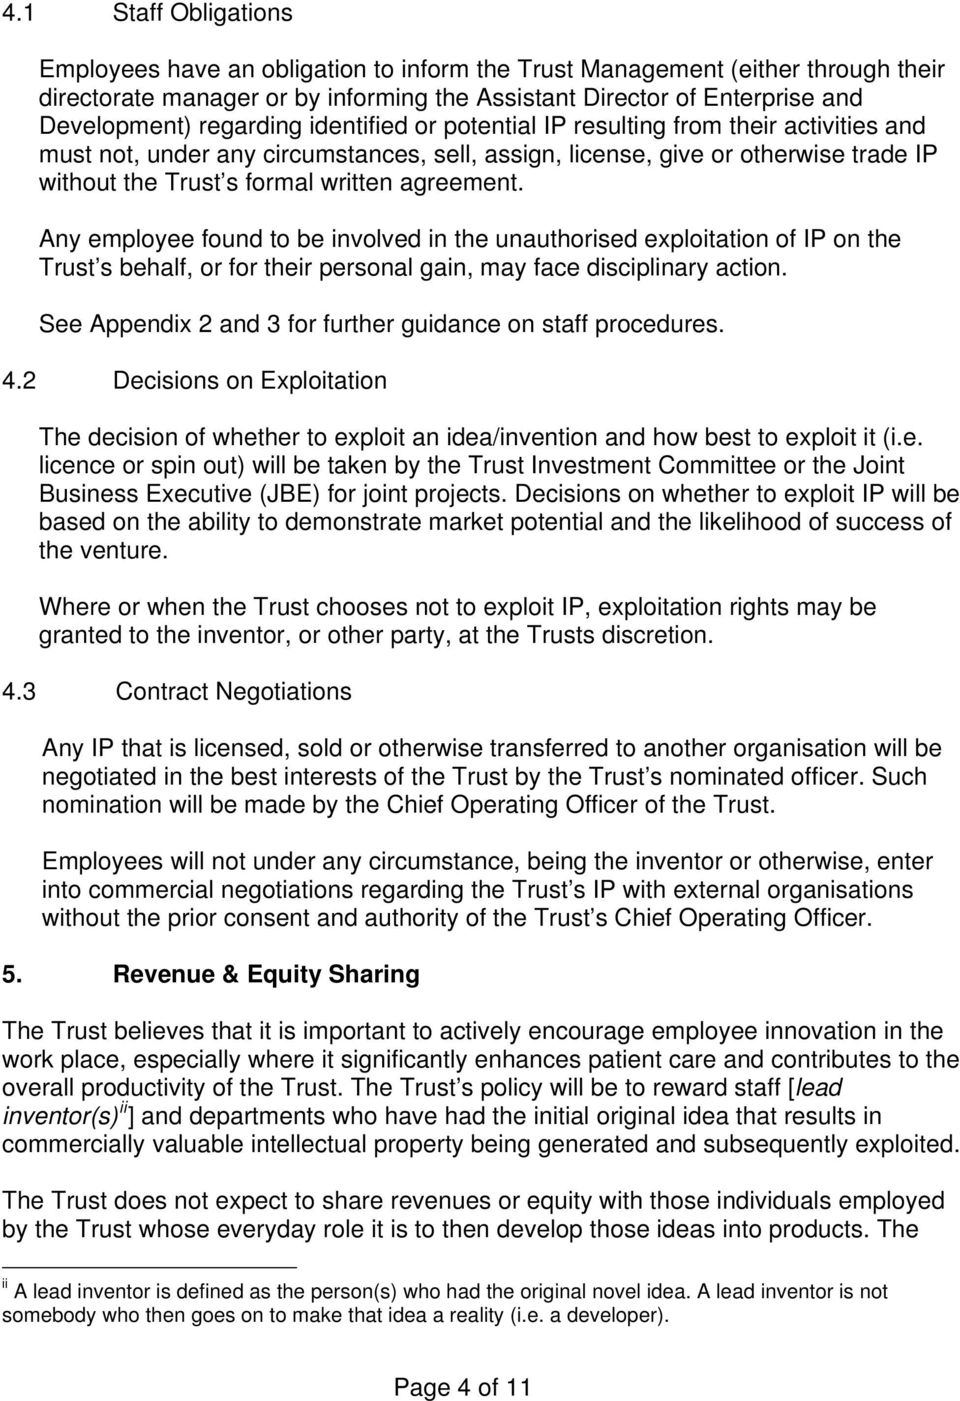 agreement. Any employee found to be involved in the unauthorised exploitation of IP on the Trust s behalf, or for their personal gain, may face disciplinary action.